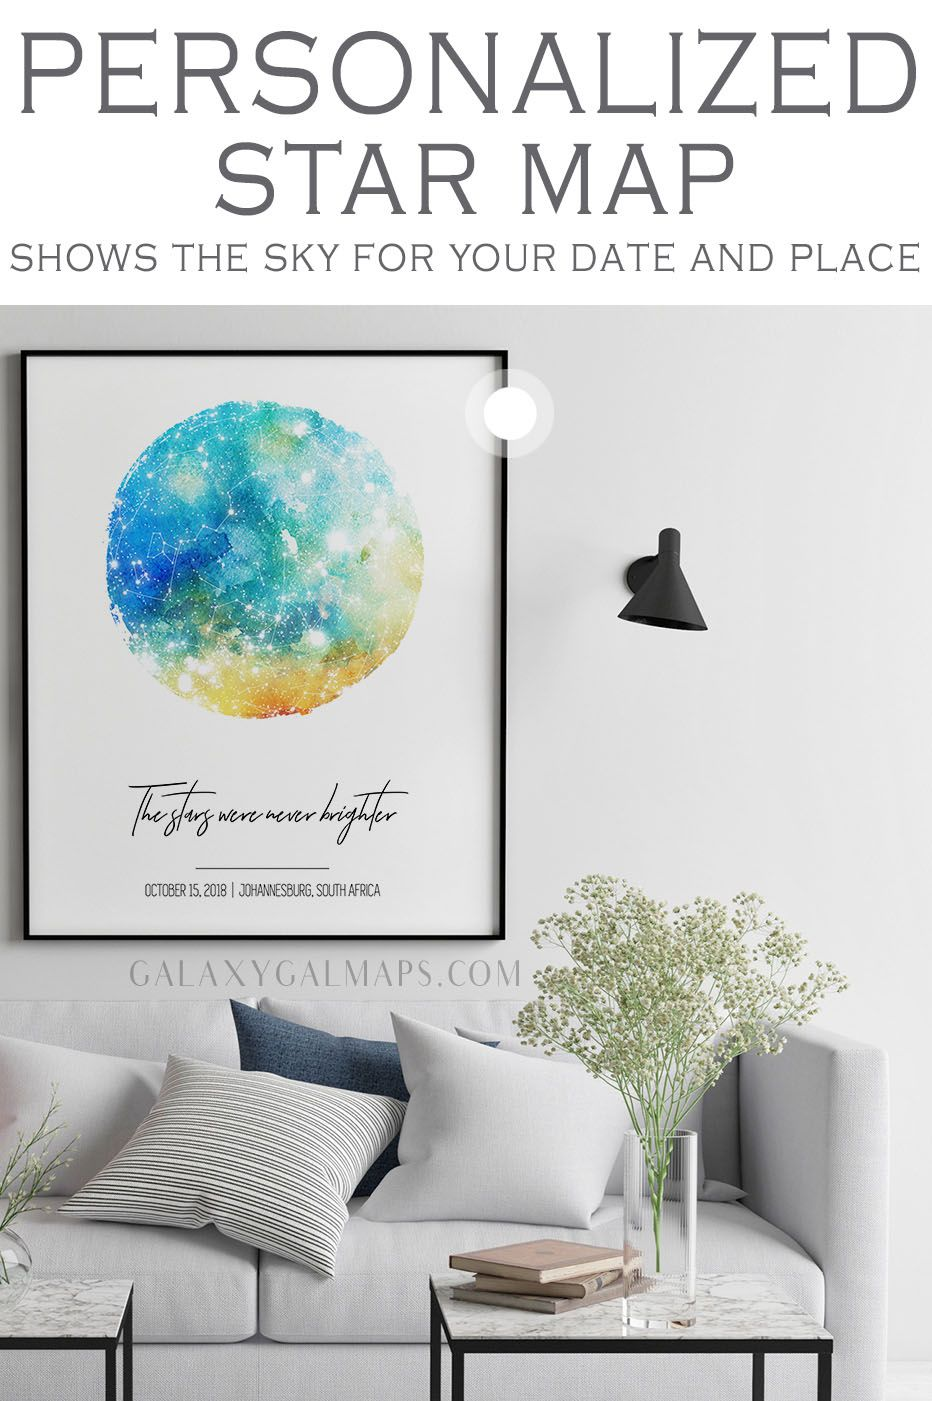 Your Custom Star Map By Date First Christmas Gift Personalized Jewelry Christmas Gift Pr Star Map Boyfriend Personalized Gifts Boyfriend Anniversary Gifts